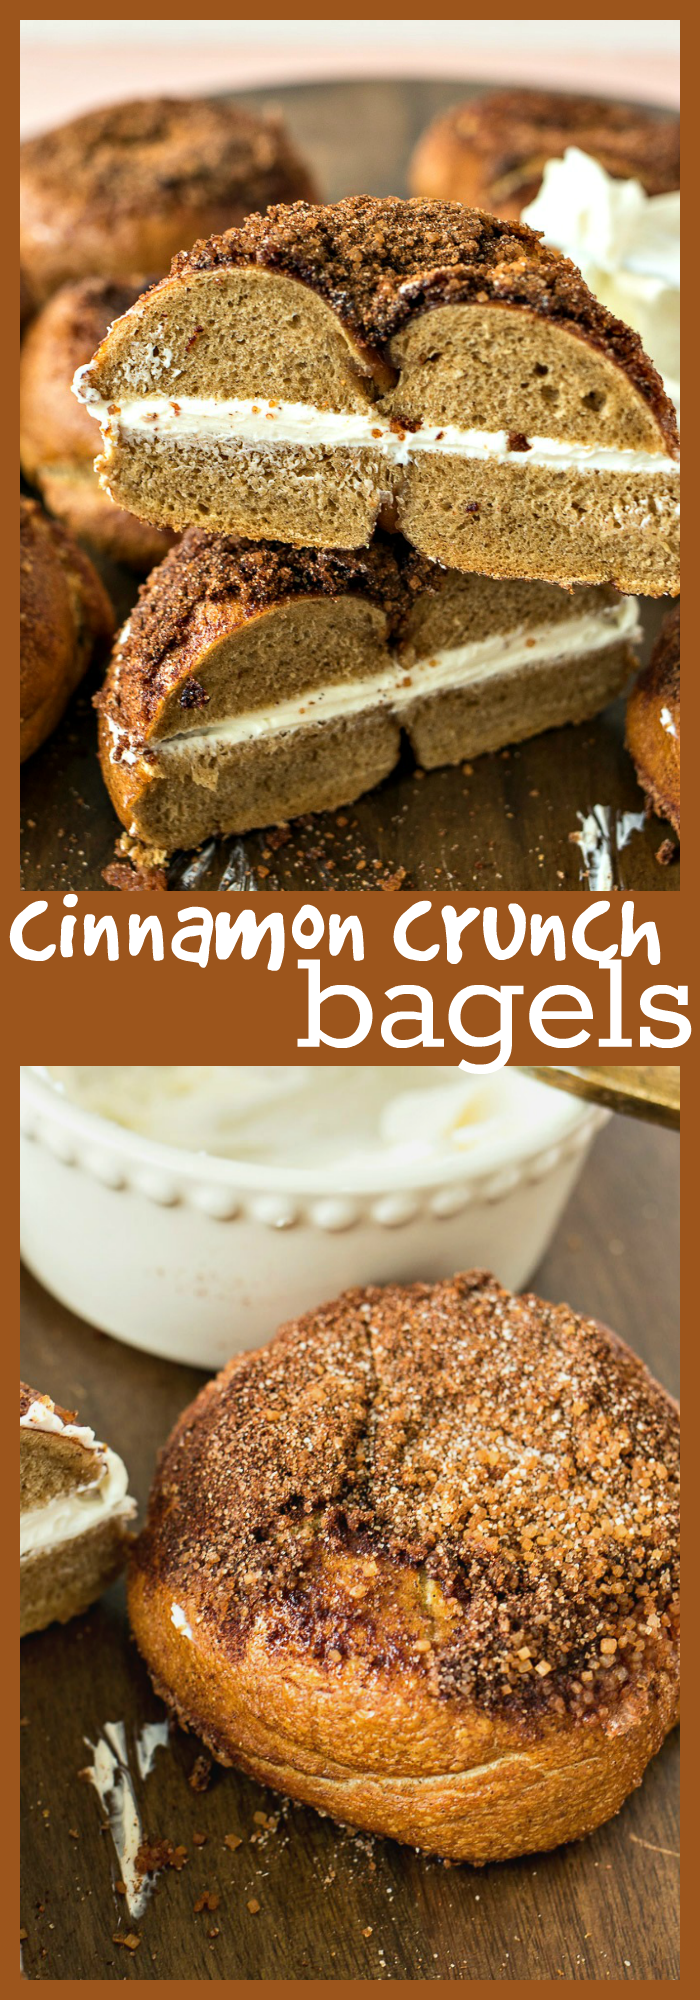 Cinnamon Crunch Bagels – Chewy cinnamon bagels are baked with a sugar and cinnamon mixture on top to make a yummy, crunchy coating. #recipe #bagel #bread #homemade #cinnamon #Panera #breakfast #brunch #easter #christmas